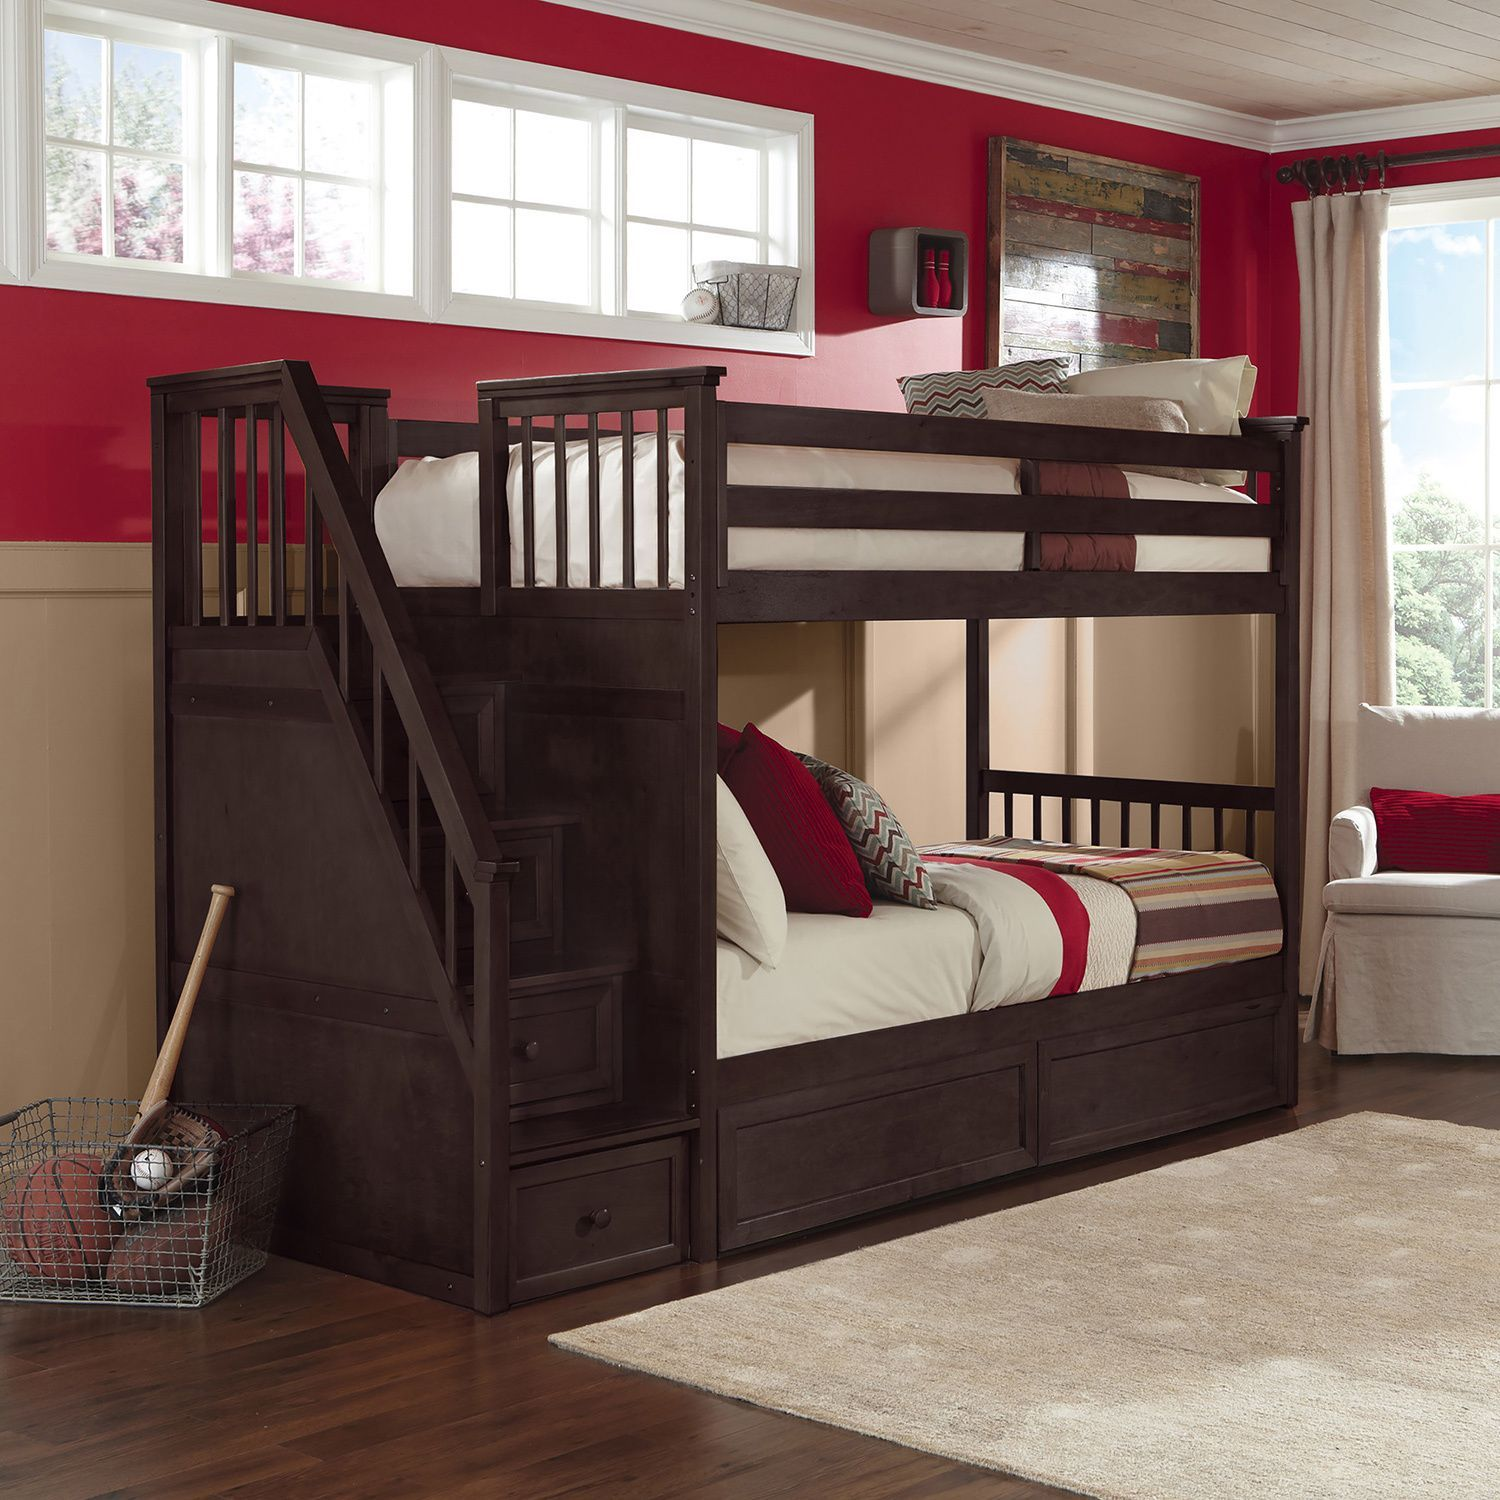 Fun Kids Beds make going to bed fun for your kids with this school house stair